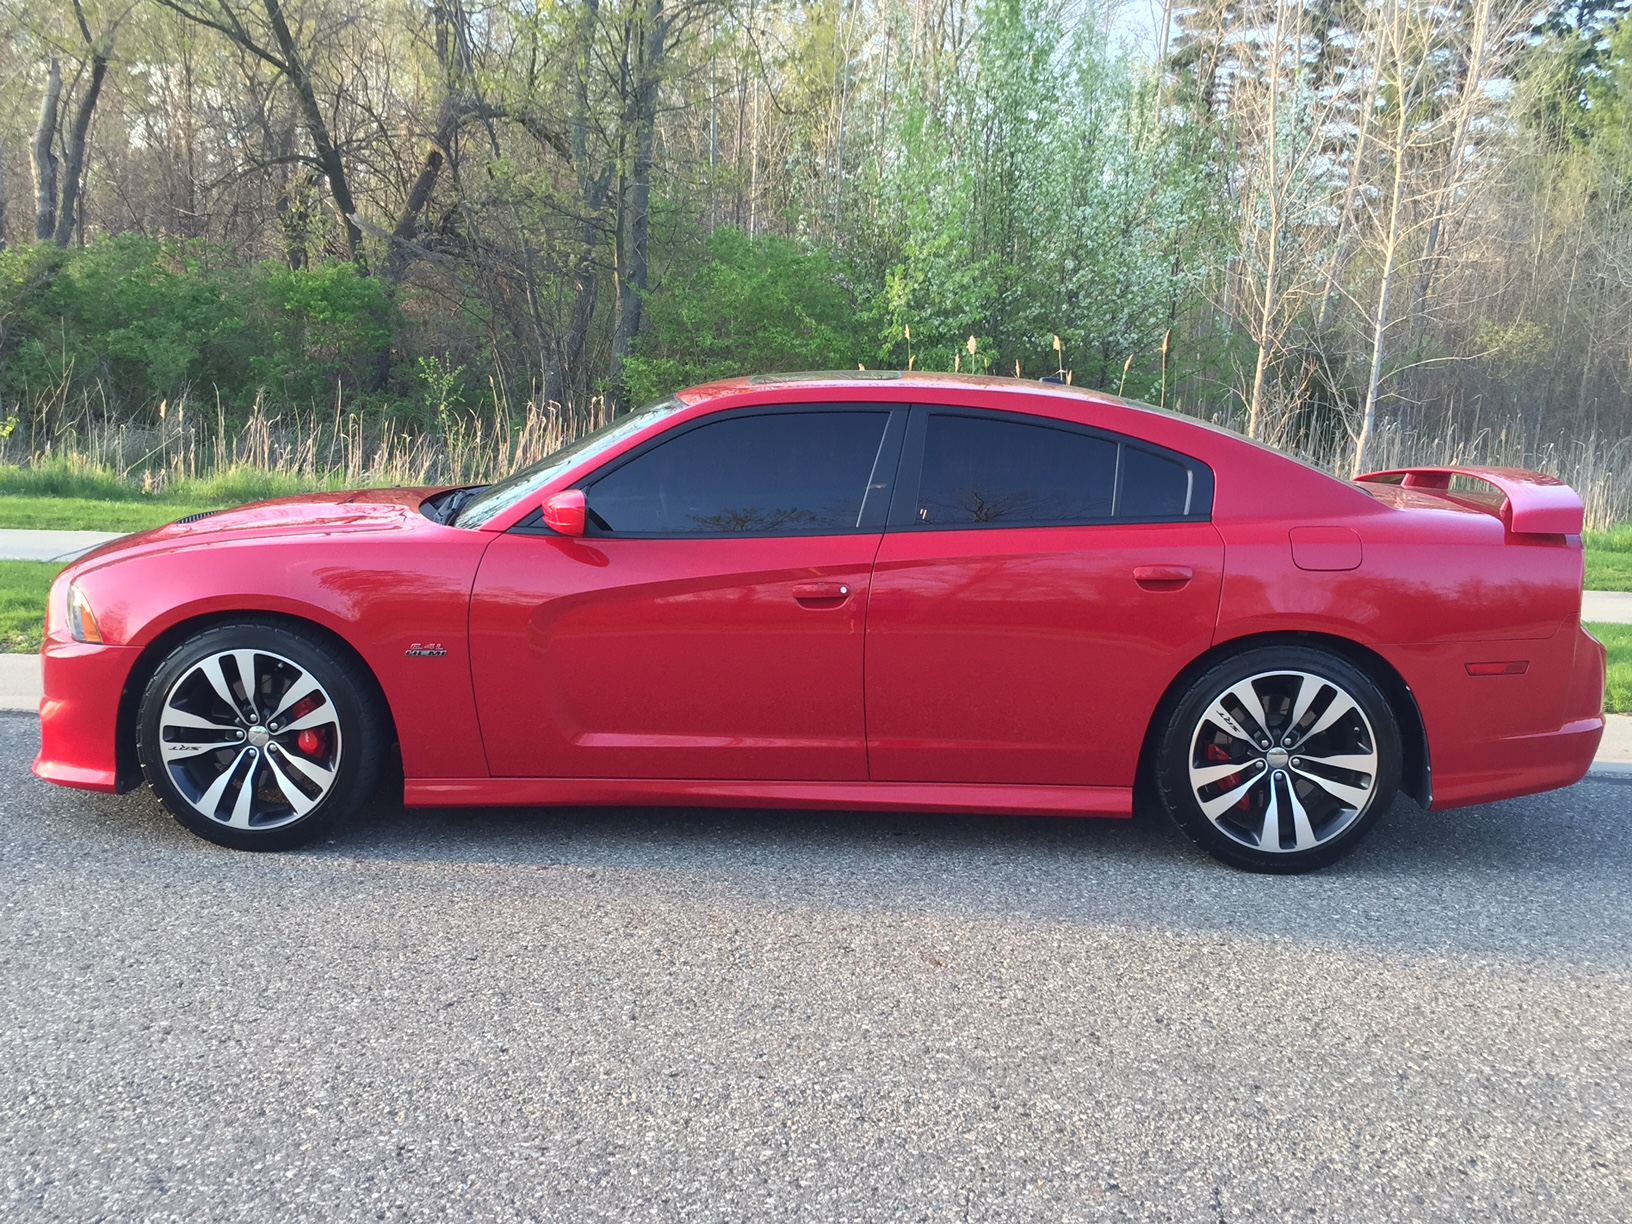 FOR SALE 2012 Dodge Charger SRT8 Pearl Red